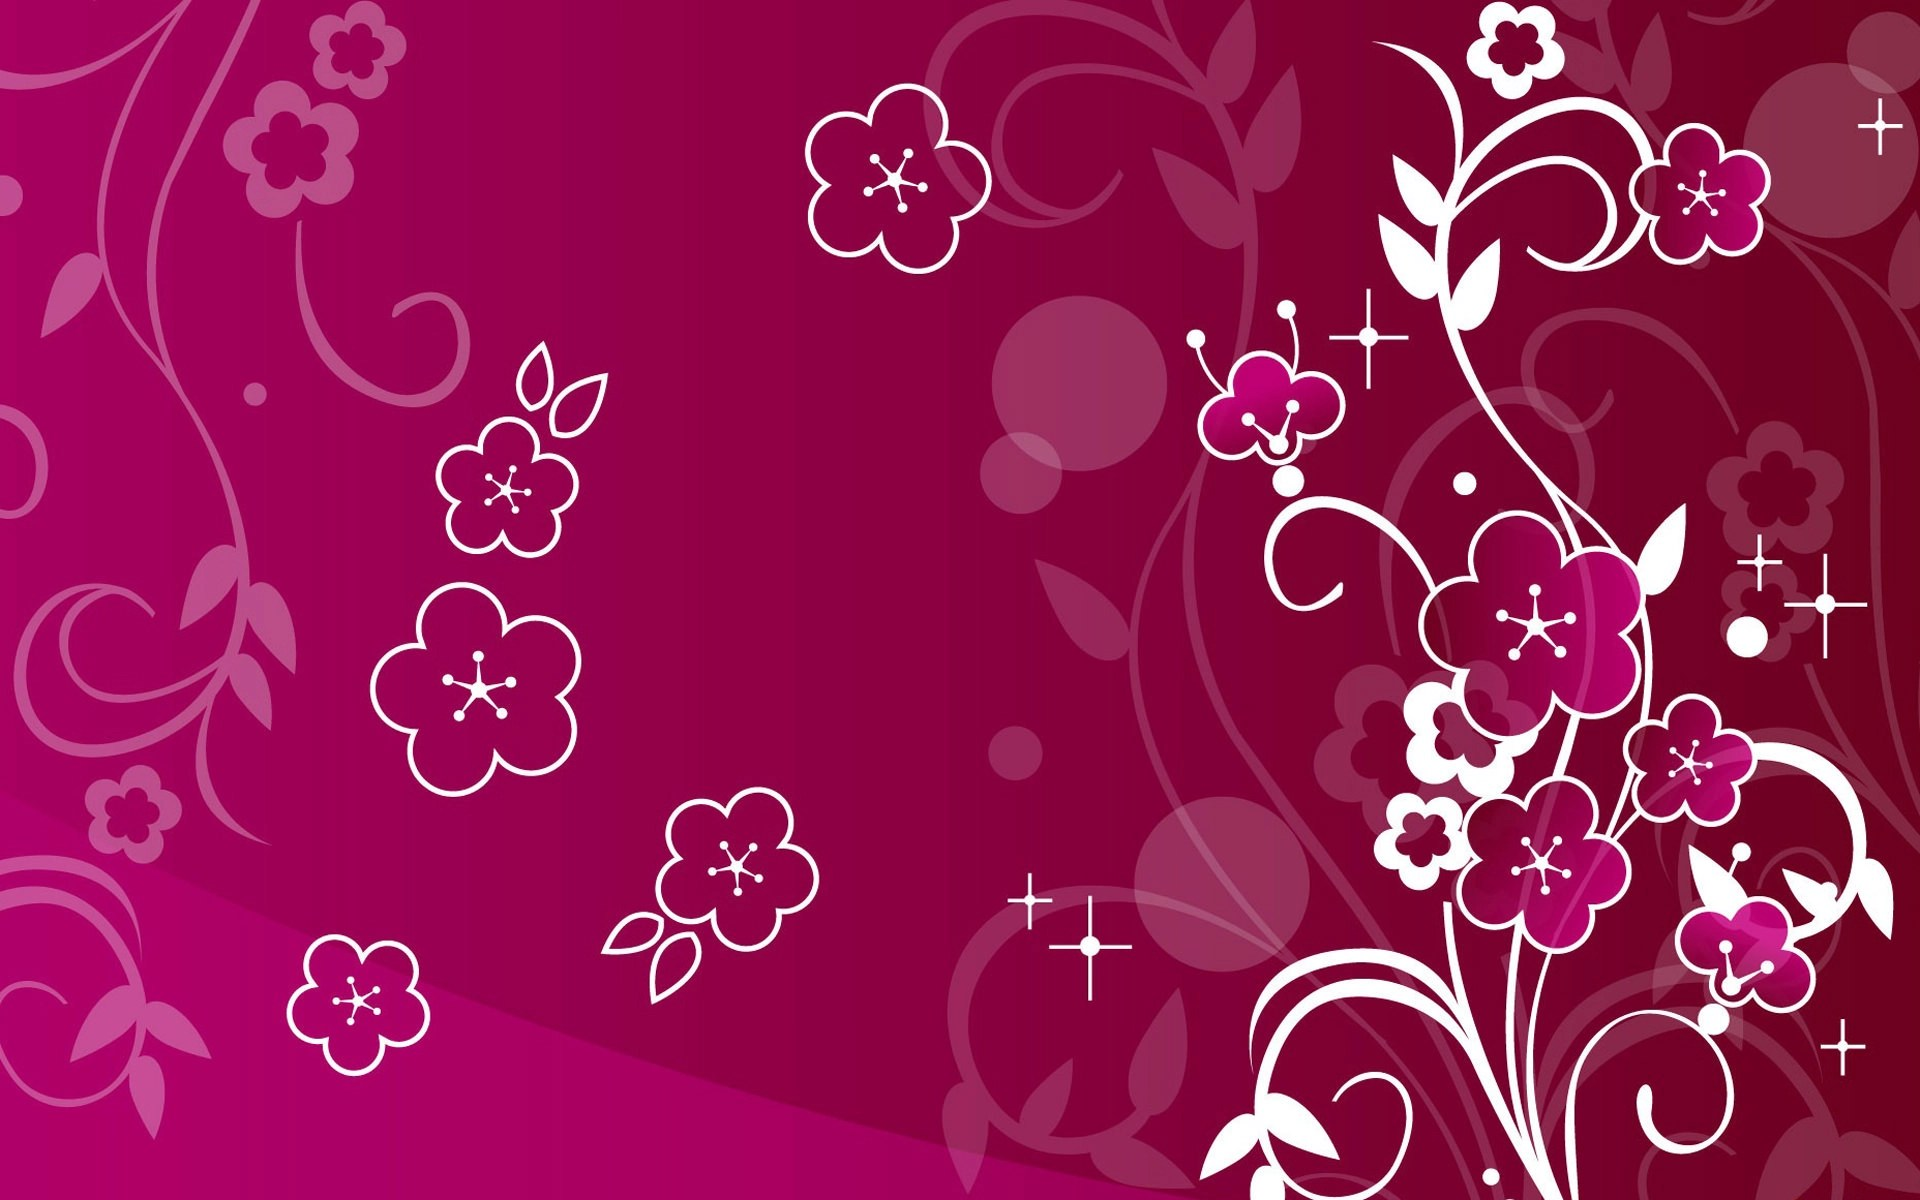 Wallpaper Girly Quotes 21 Girly Wallpapers Pink Backgrounds Images Pictures